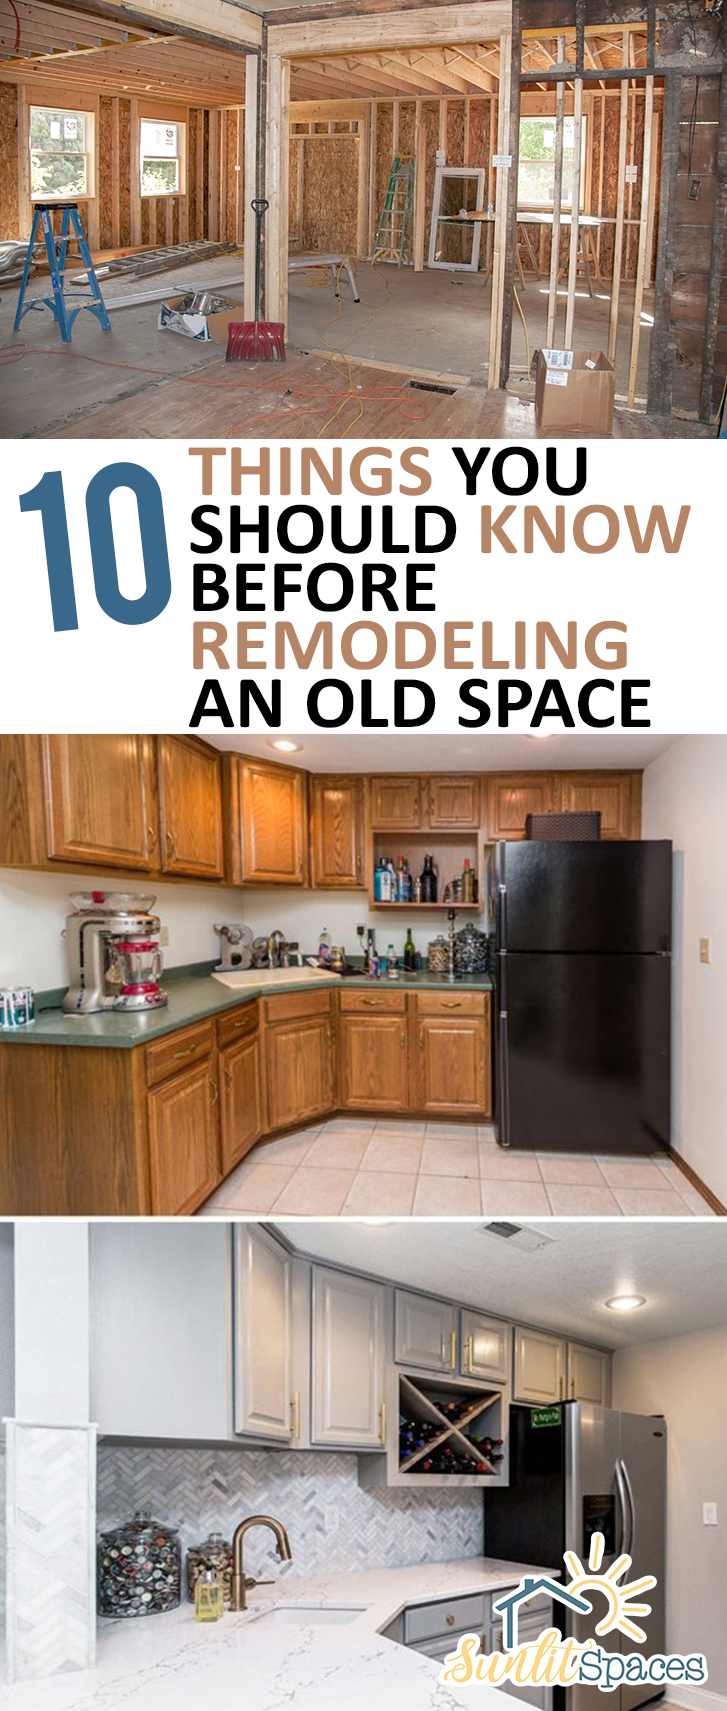 10 Things You Should Know Before Remodeling An Old Space